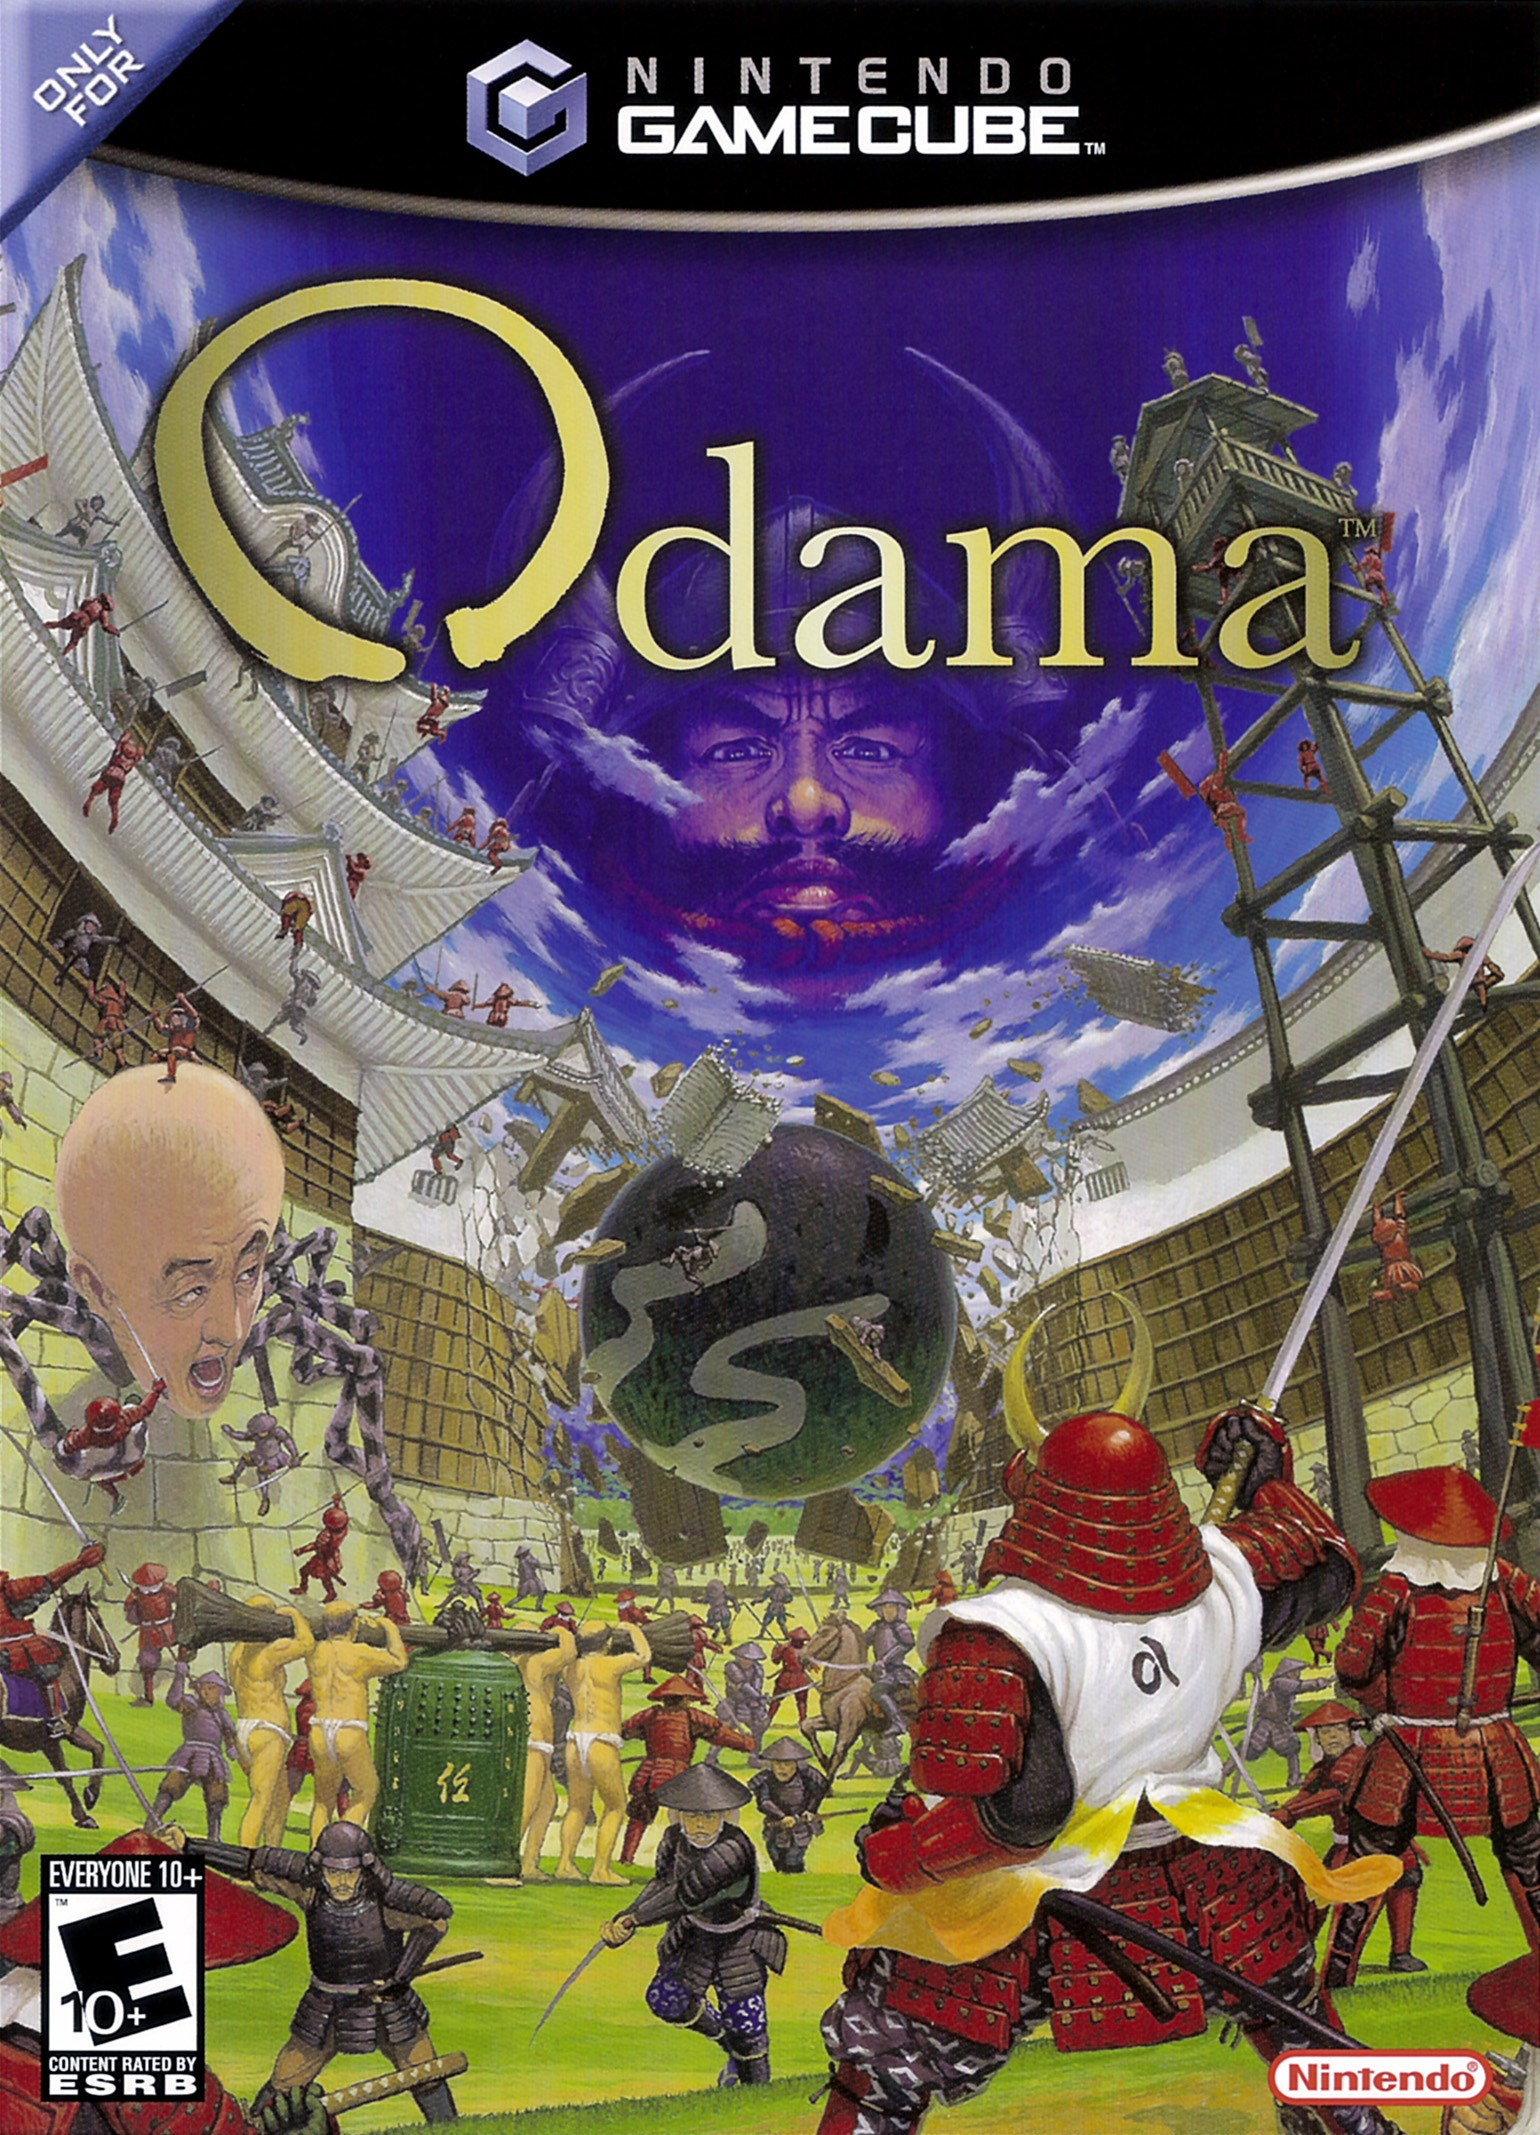 Judge a game by its cover Odama